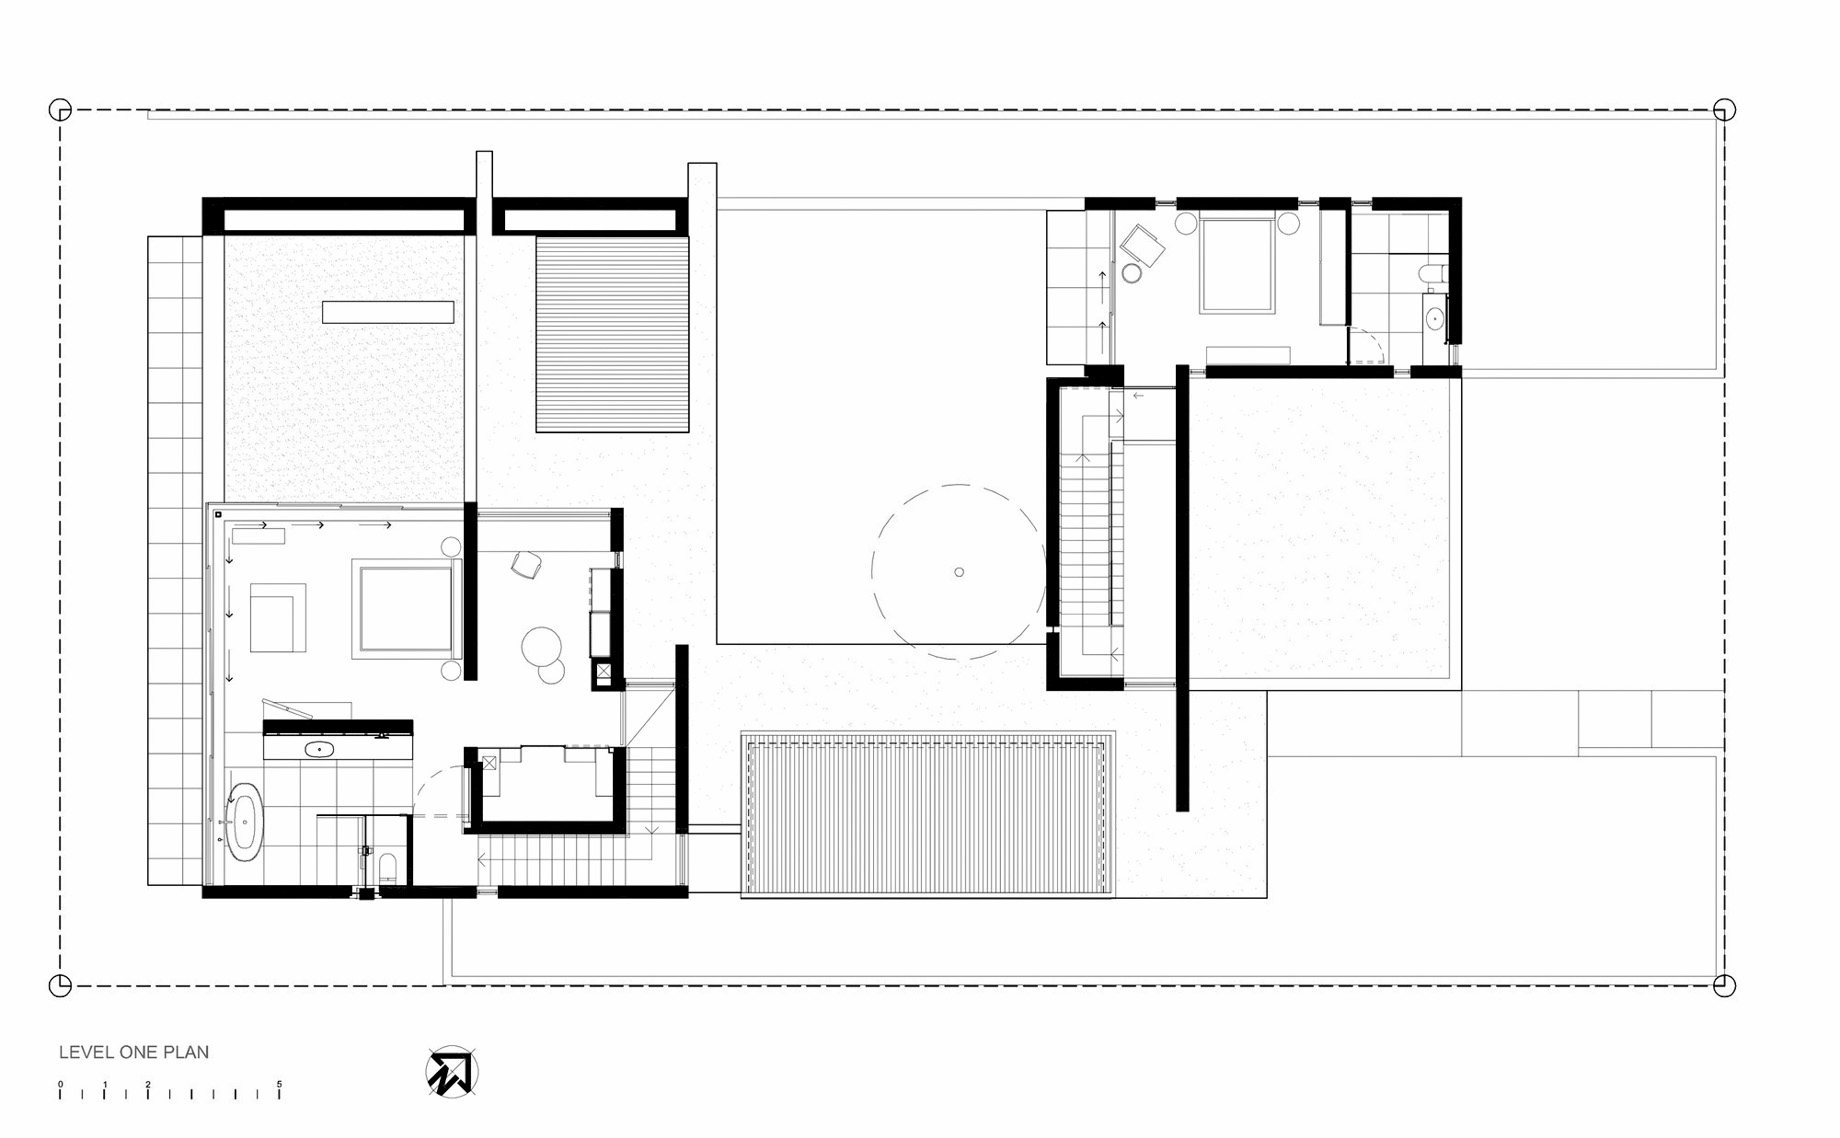 Level One Floor Plan - Pearl Bay Residence - Yzerfontein, Western Cape, South Africa